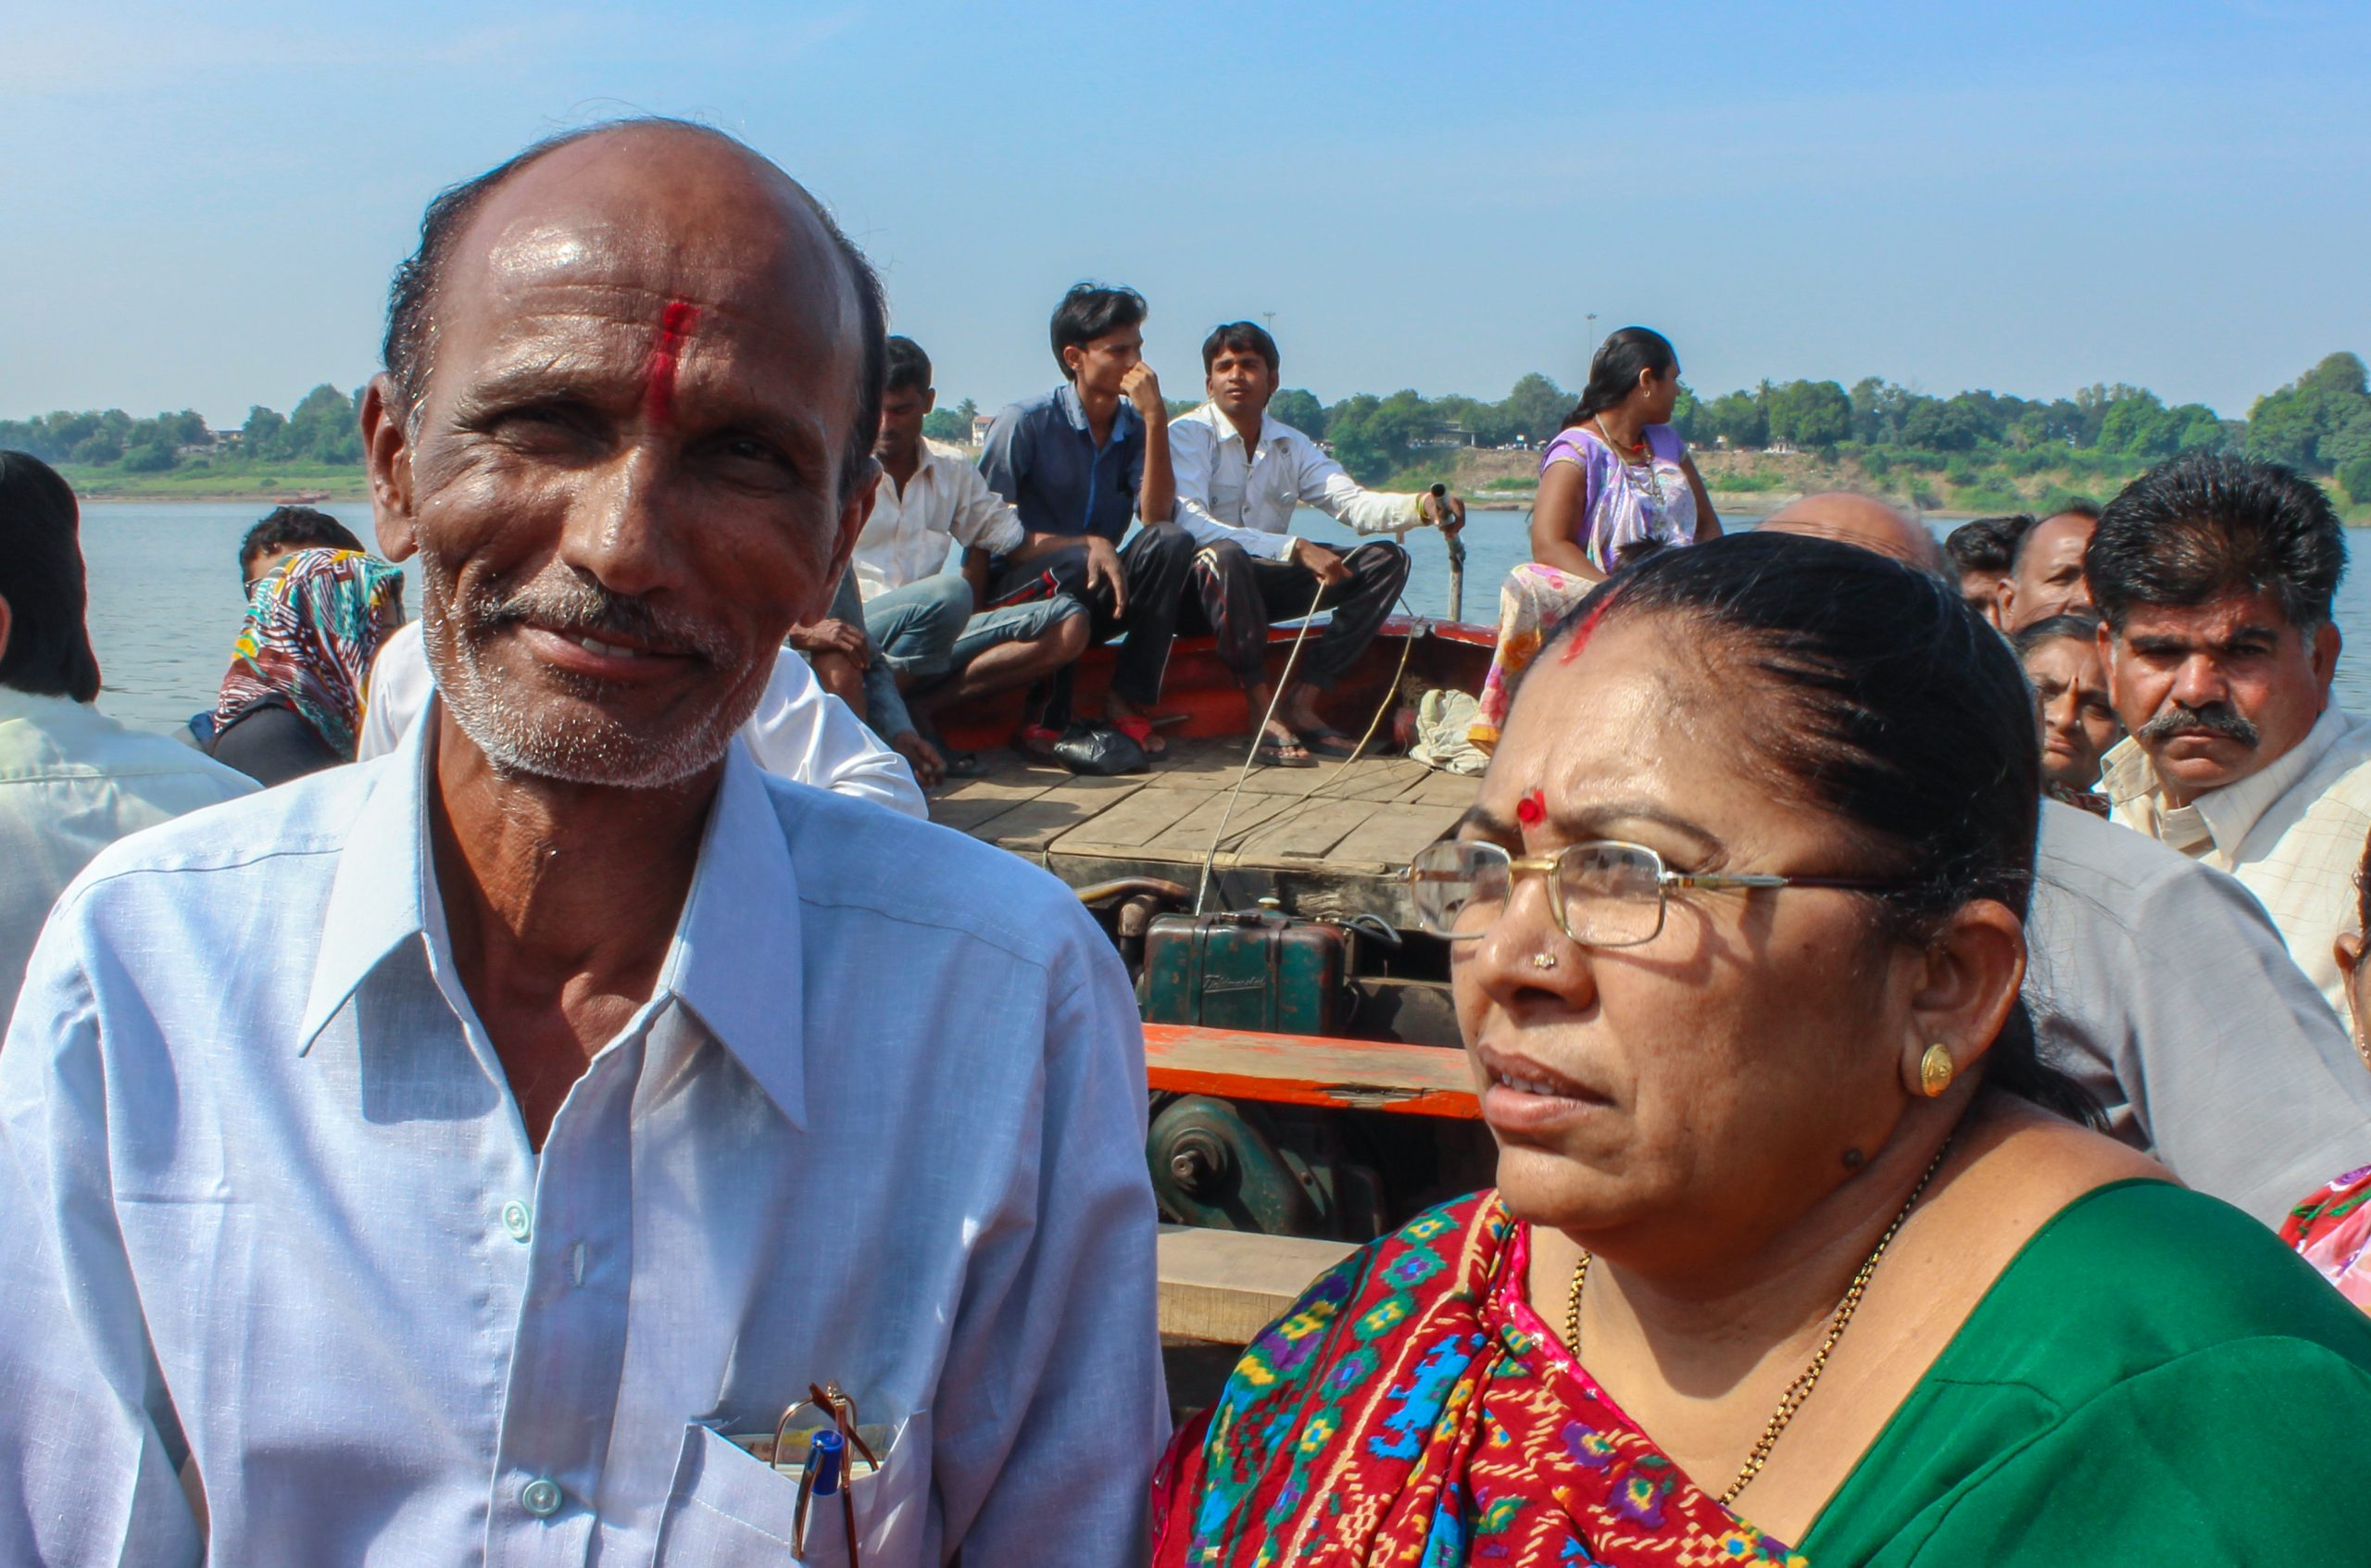 Old man and woman traveling on a boat.